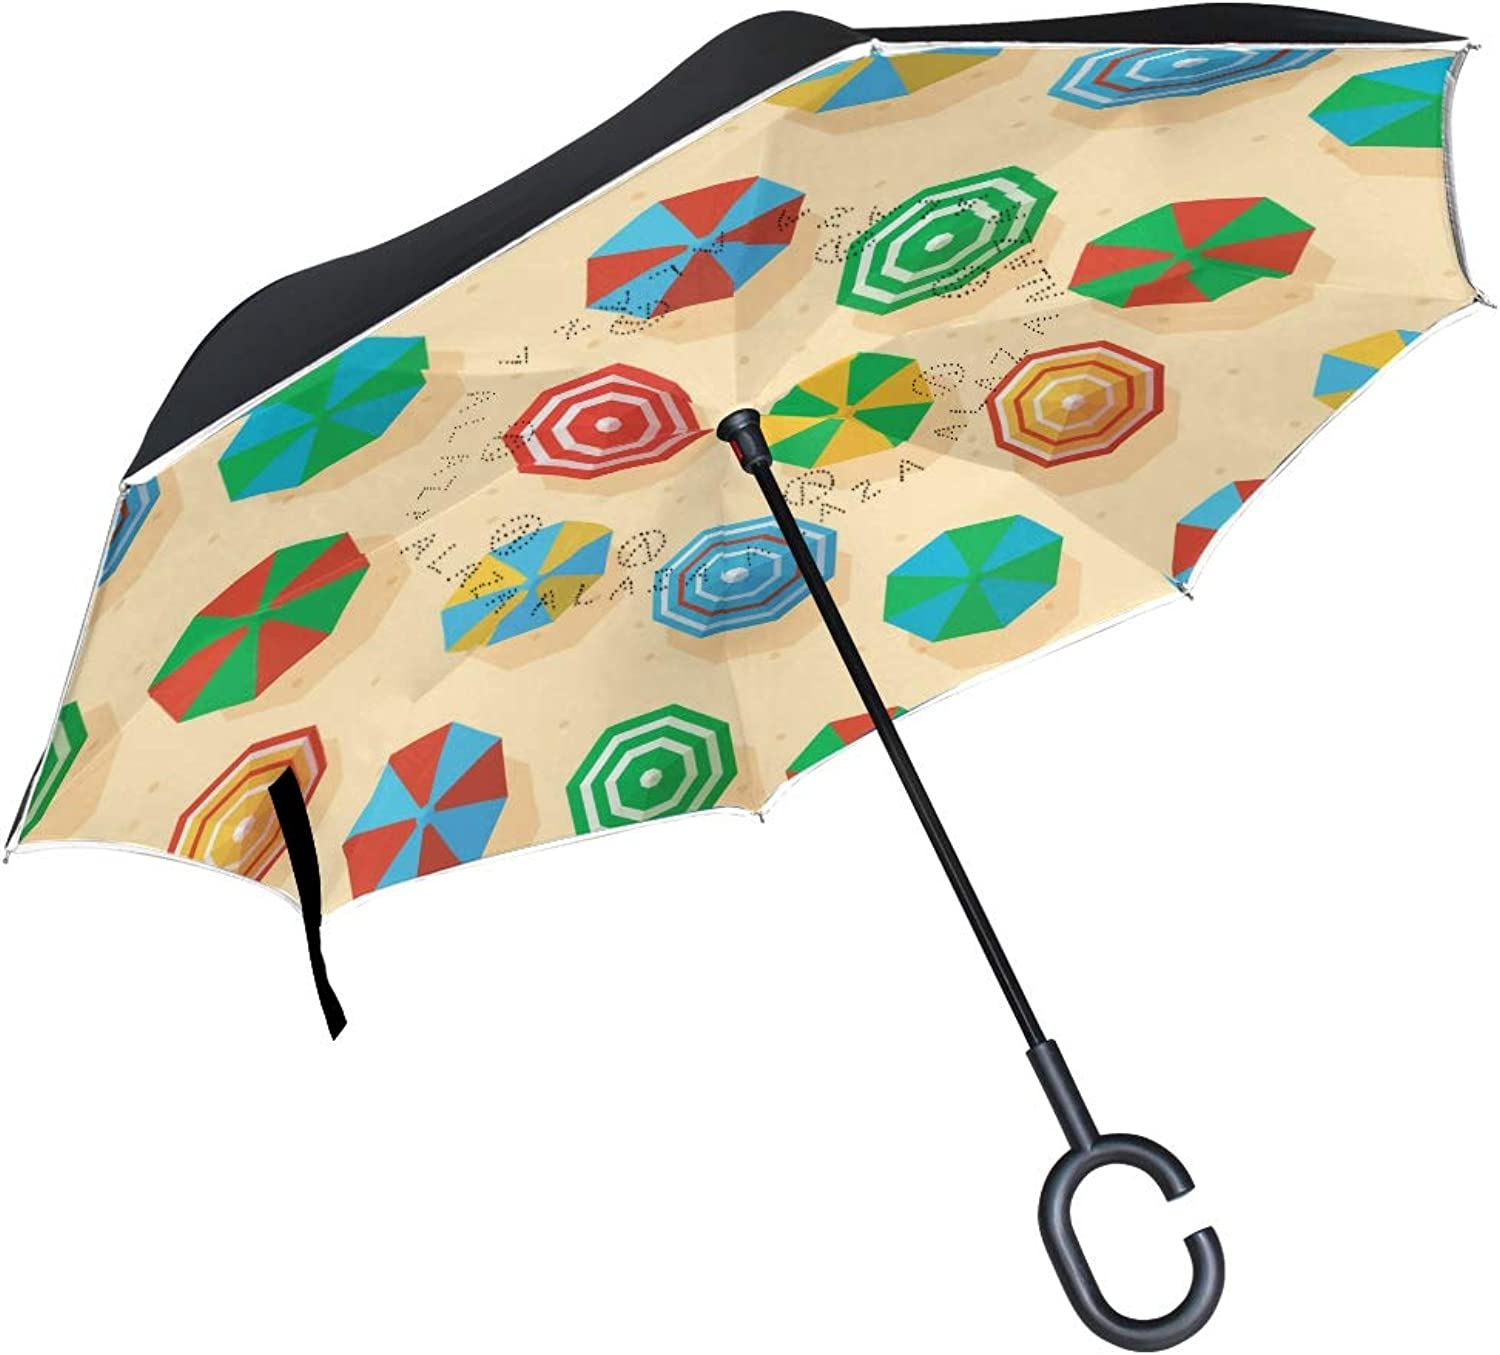 a5e99db7faed Art Flower Ingreened Umbrella Compact Windproof Double Layer Car ...